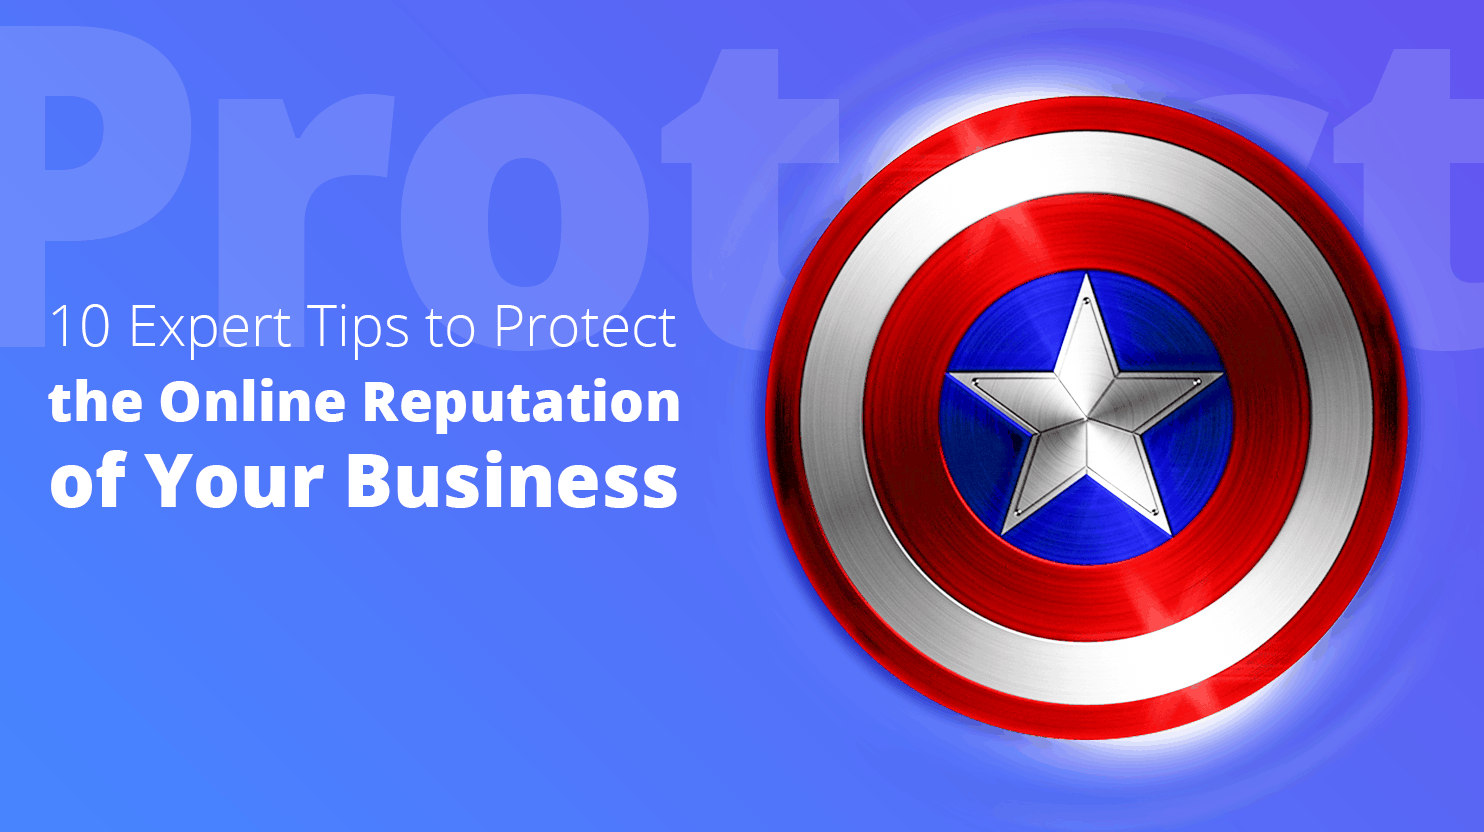 10 Expert Tips to Protect the Online Reputation of Your Business